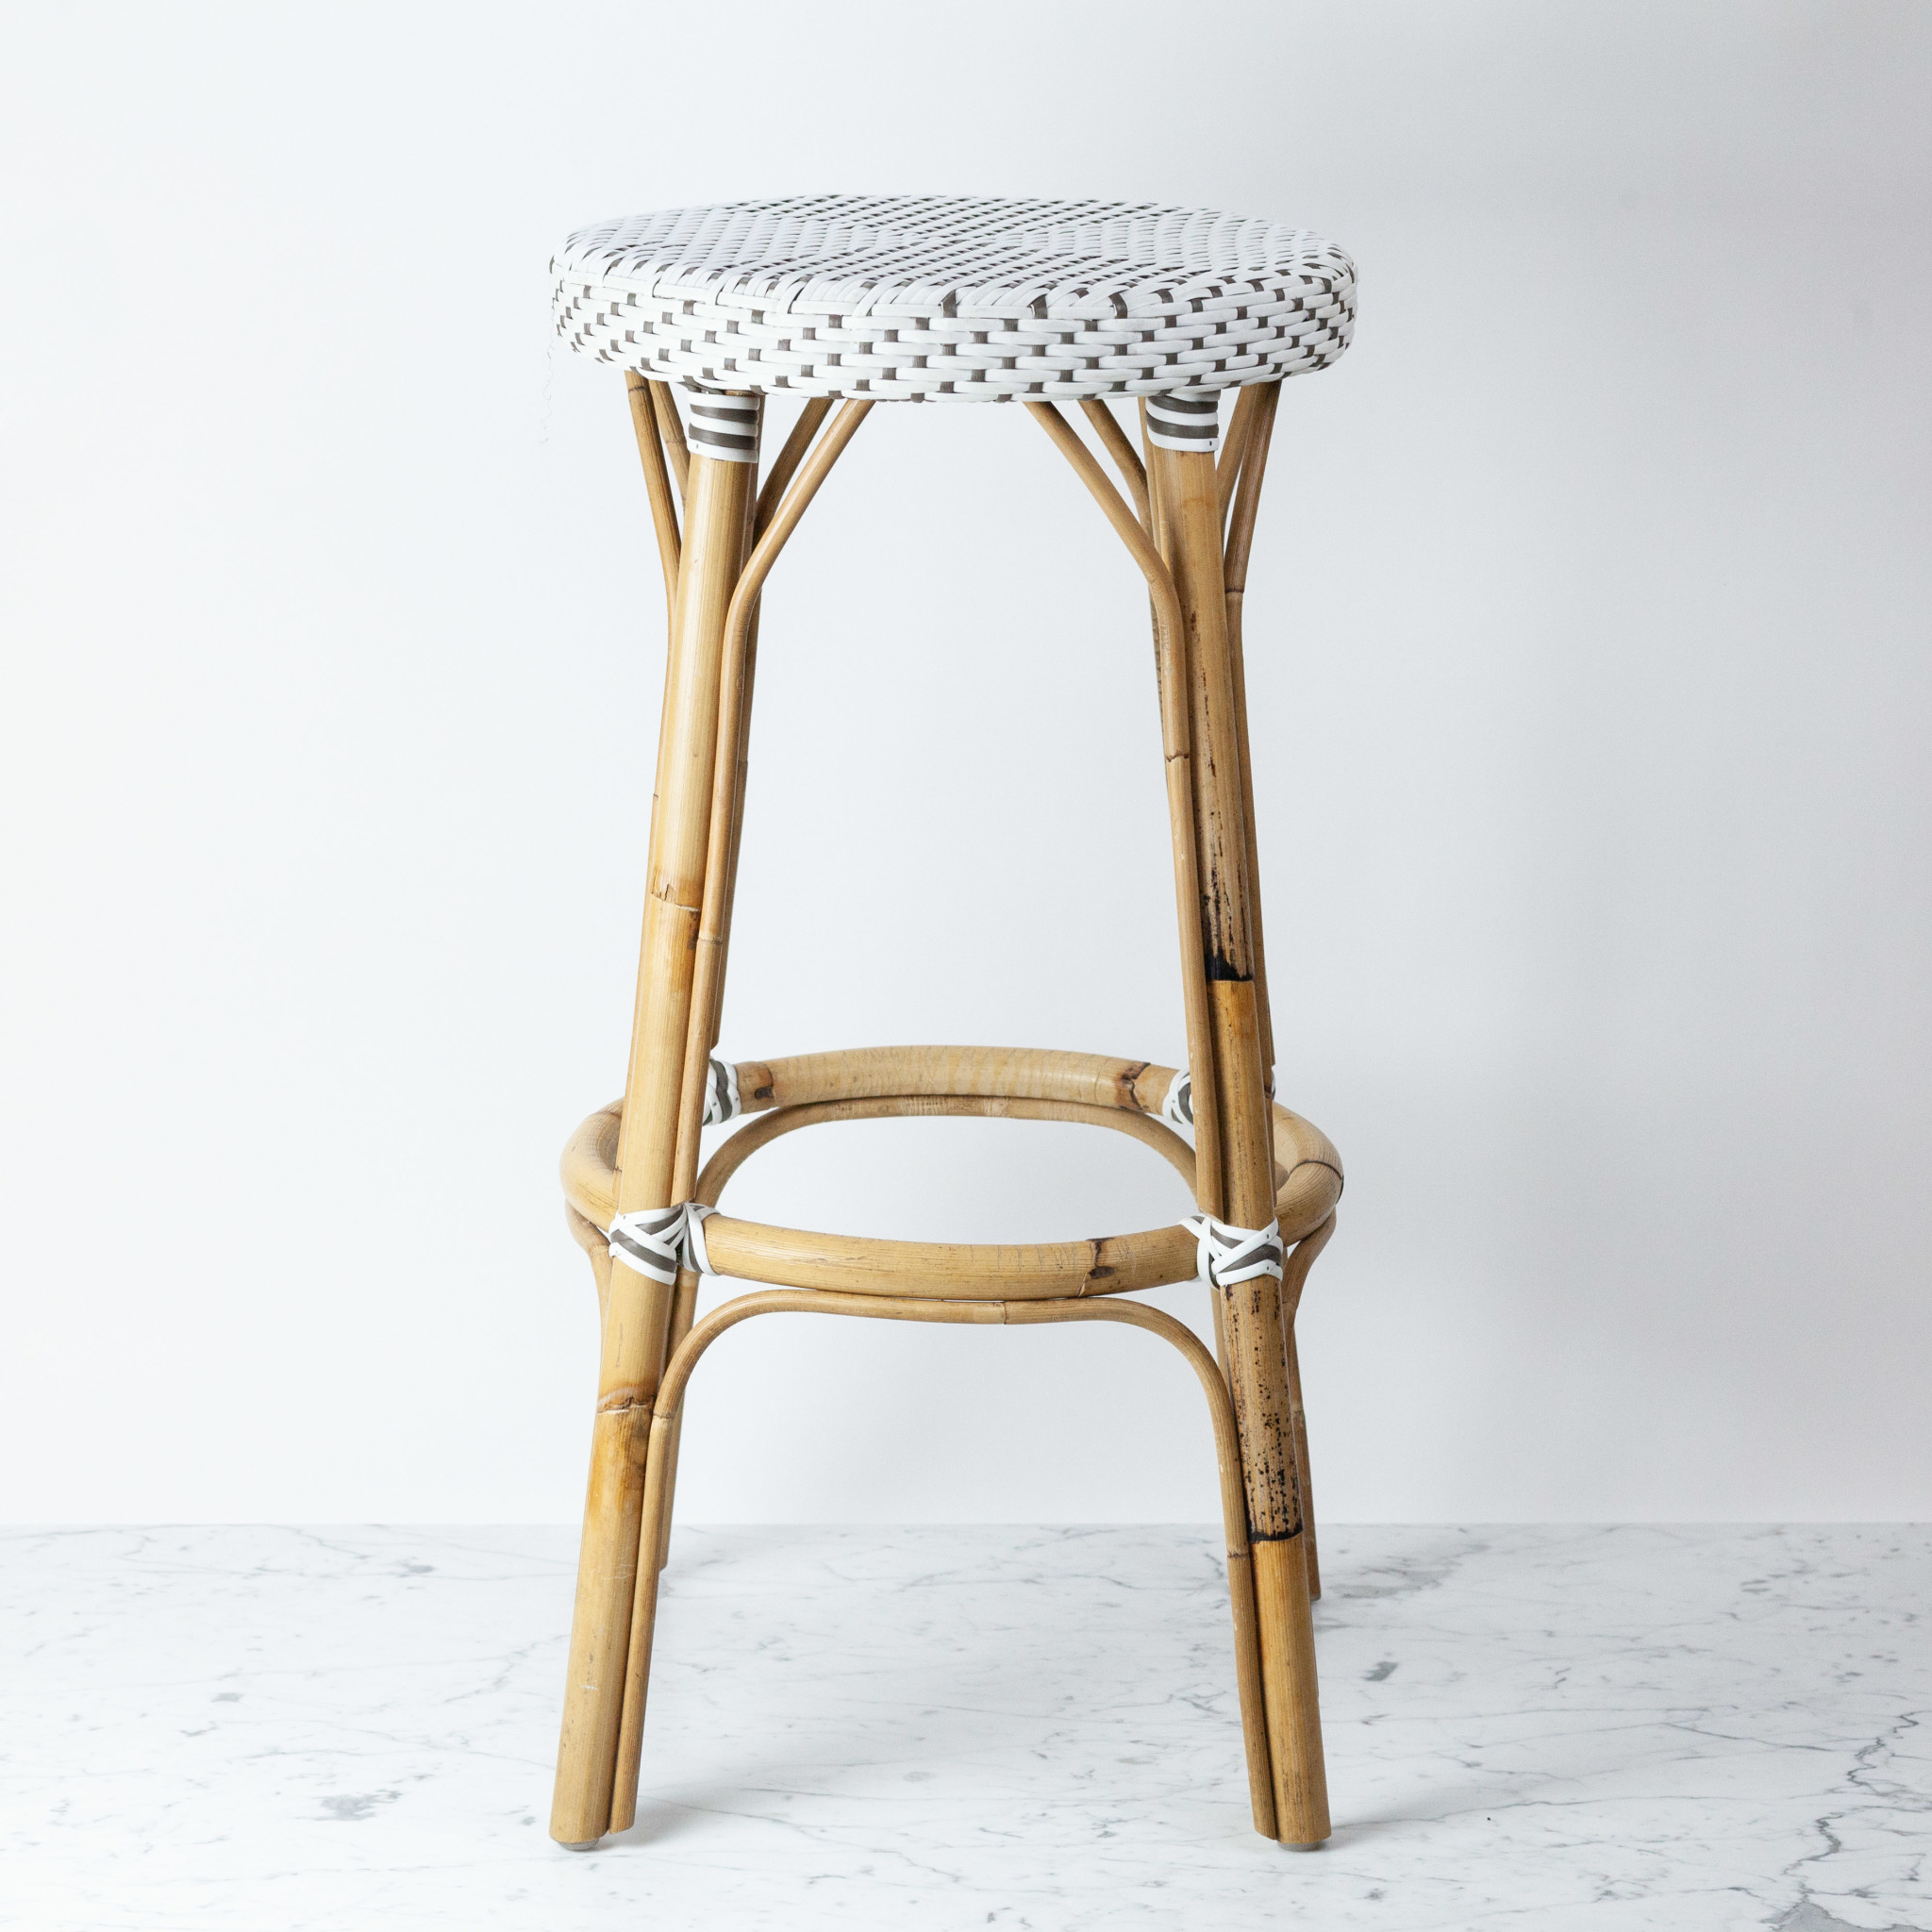 Sika-Design Simone Rattan Bar Stool - White - 30.5""